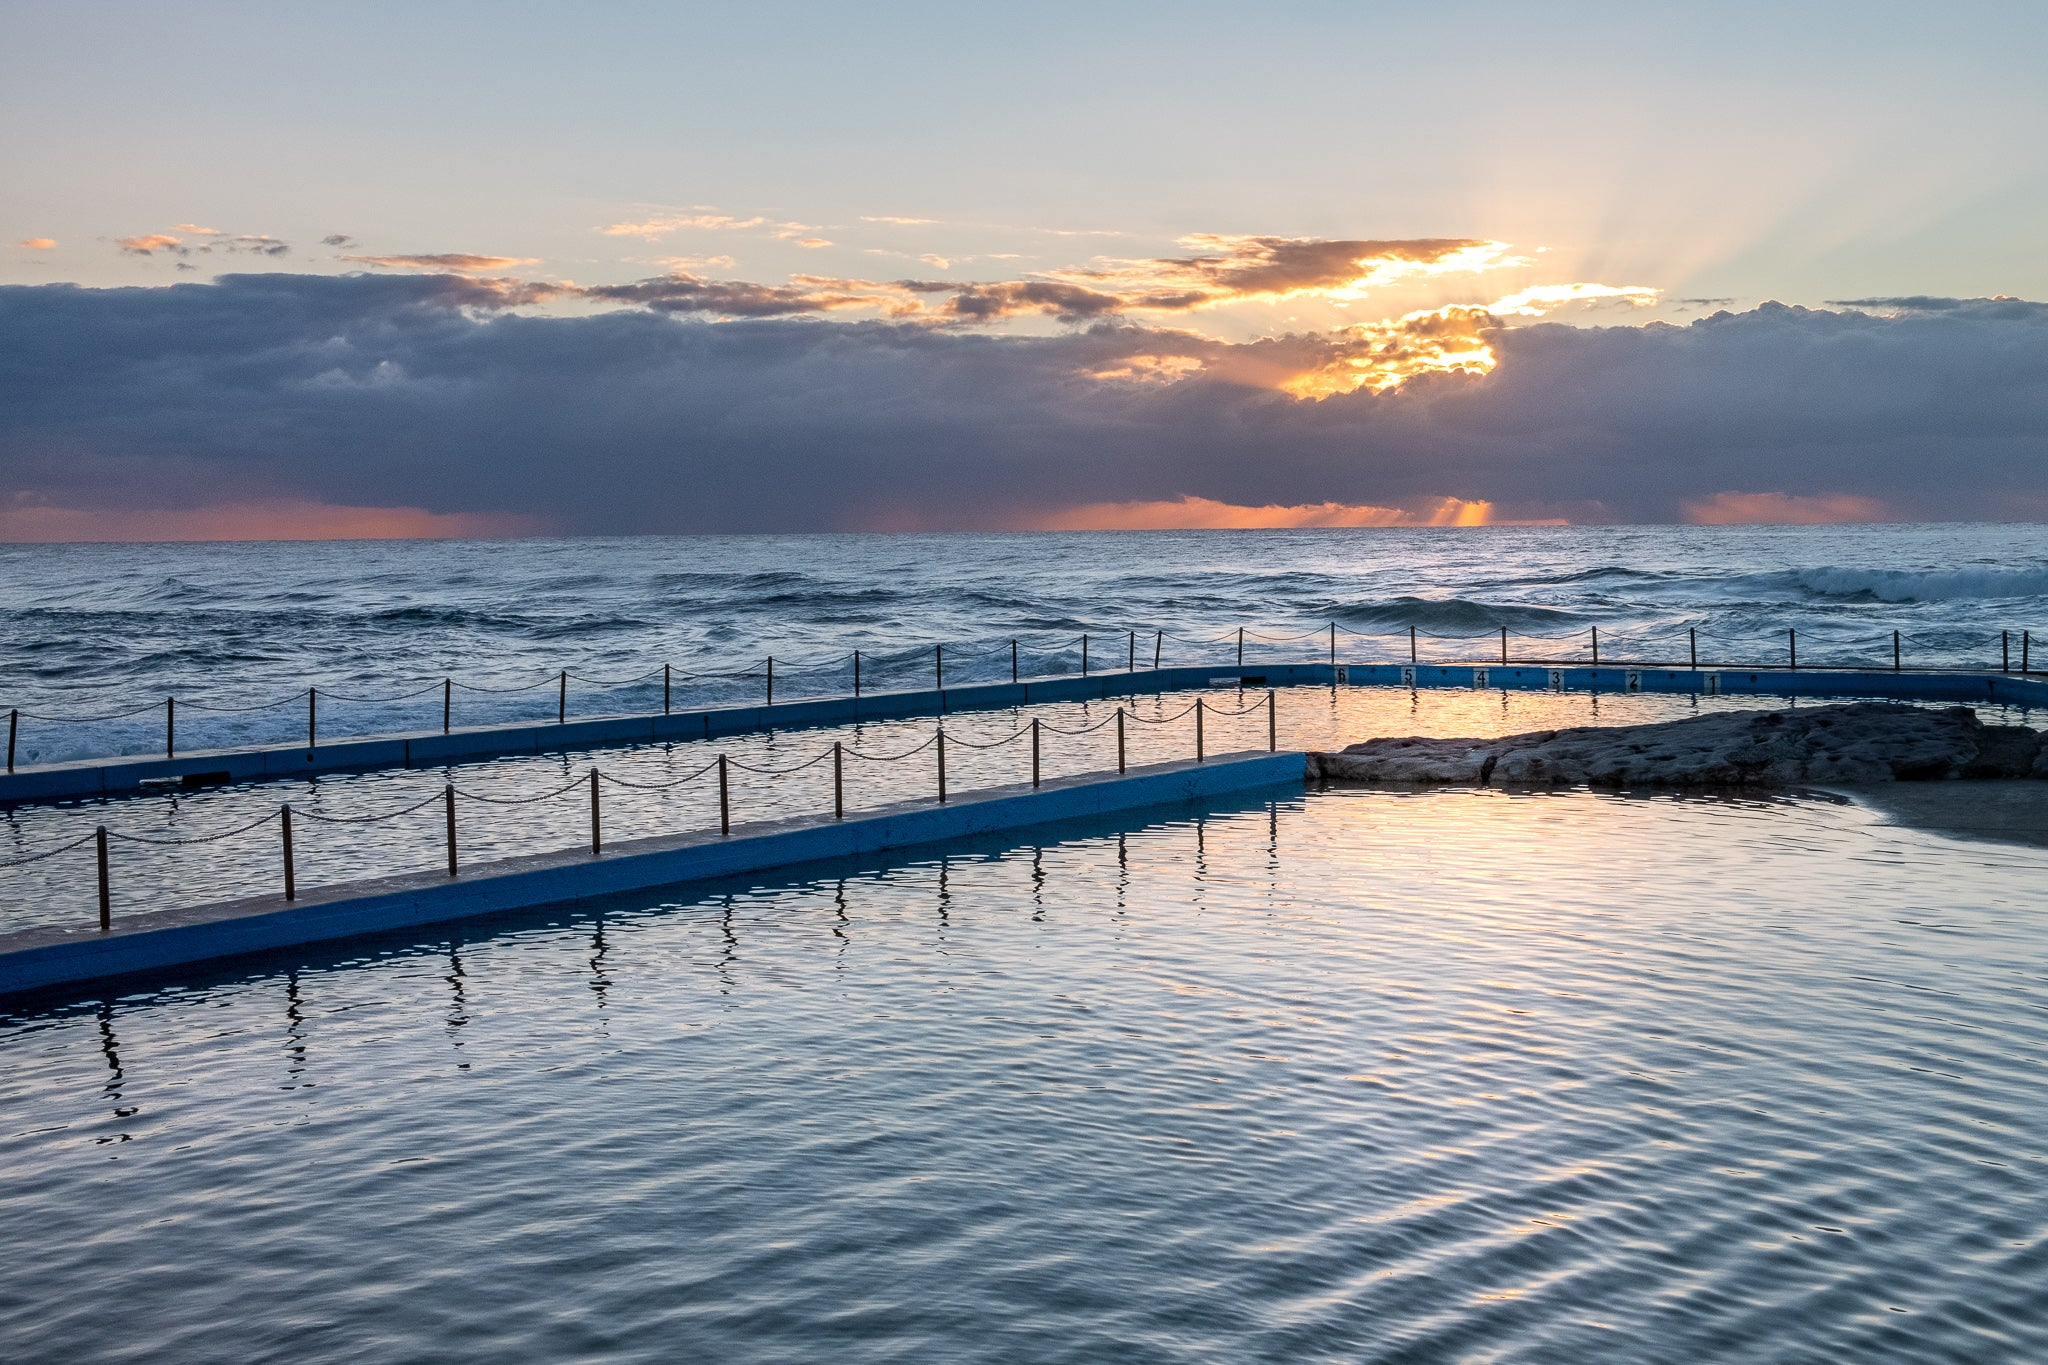 Sunrise photo from 20th October 2019 at Curl Curl Rock Pool, Sydney